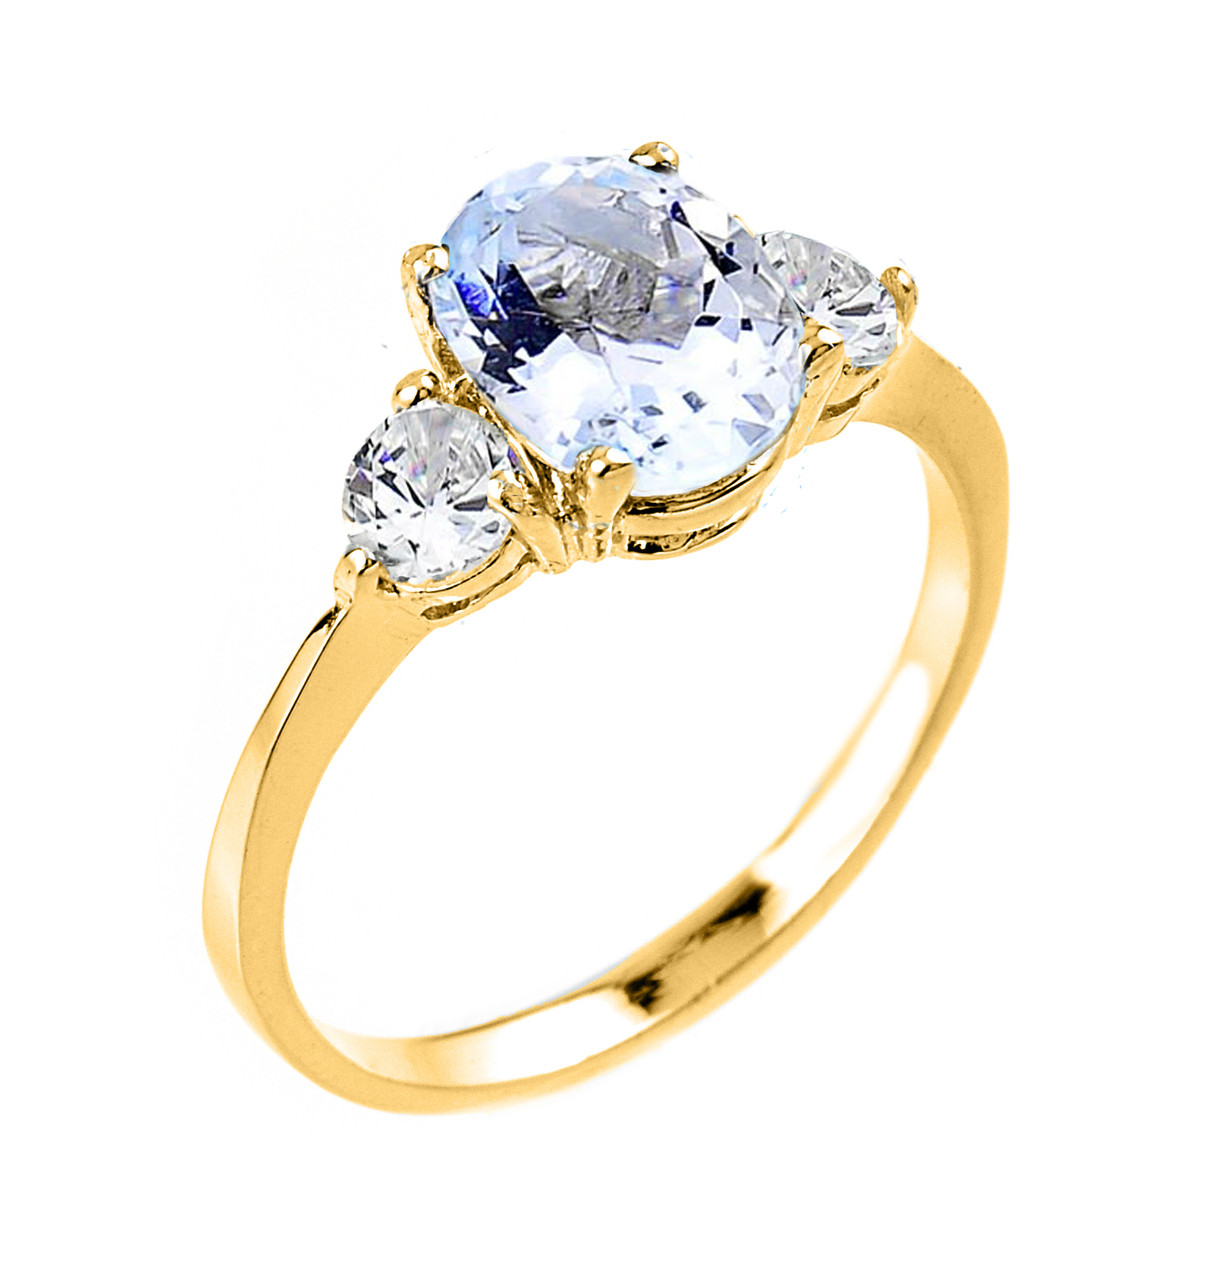 yellow gold ladies genuine aquamarine gemstone engagement ring. Black Bedroom Furniture Sets. Home Design Ideas